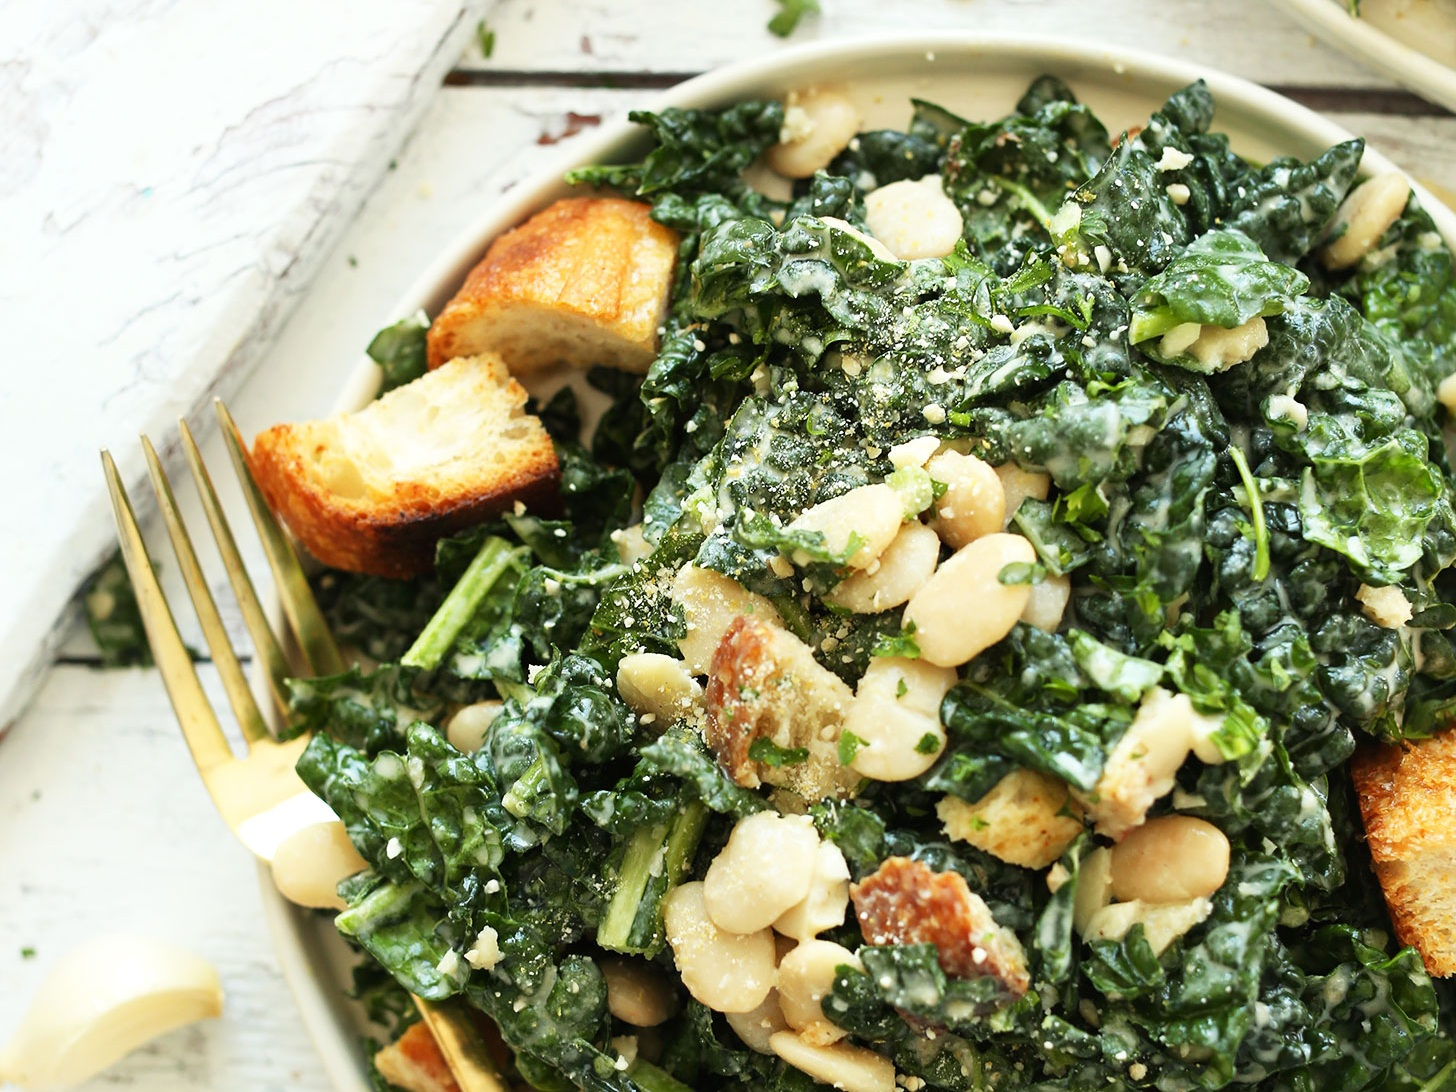 30-minute-AMAZING-Lemony-Garlic-Kale-Salad-with-Butter-Beans-and-Garlic-Croutons.-The-Garlic-Tahini-Dressing-makes-it-vegan-salad-recipe-kale-healthy.jpg